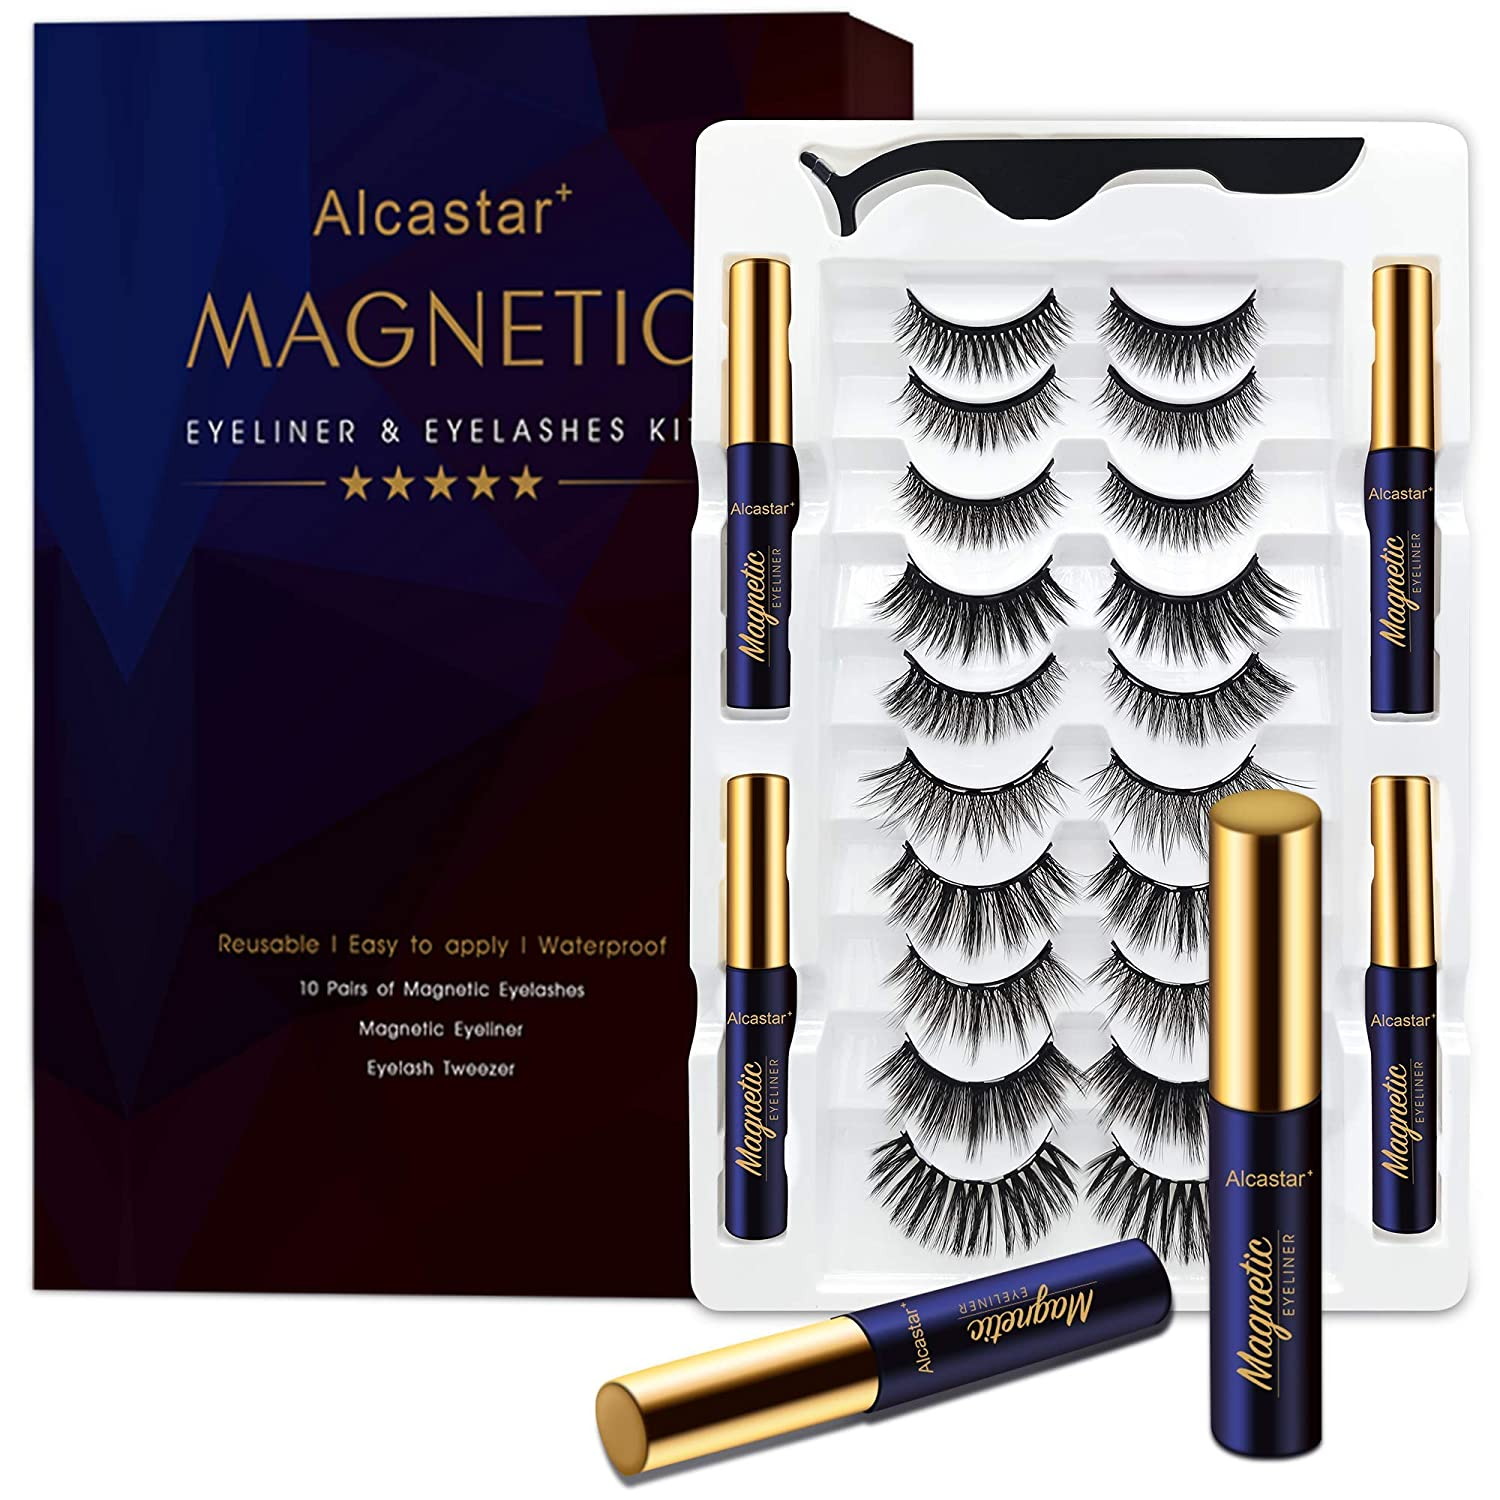 Magnetic Eyelashes trust with Eyeliner Kit Pairs 10 an Lashes Max 57% OFF